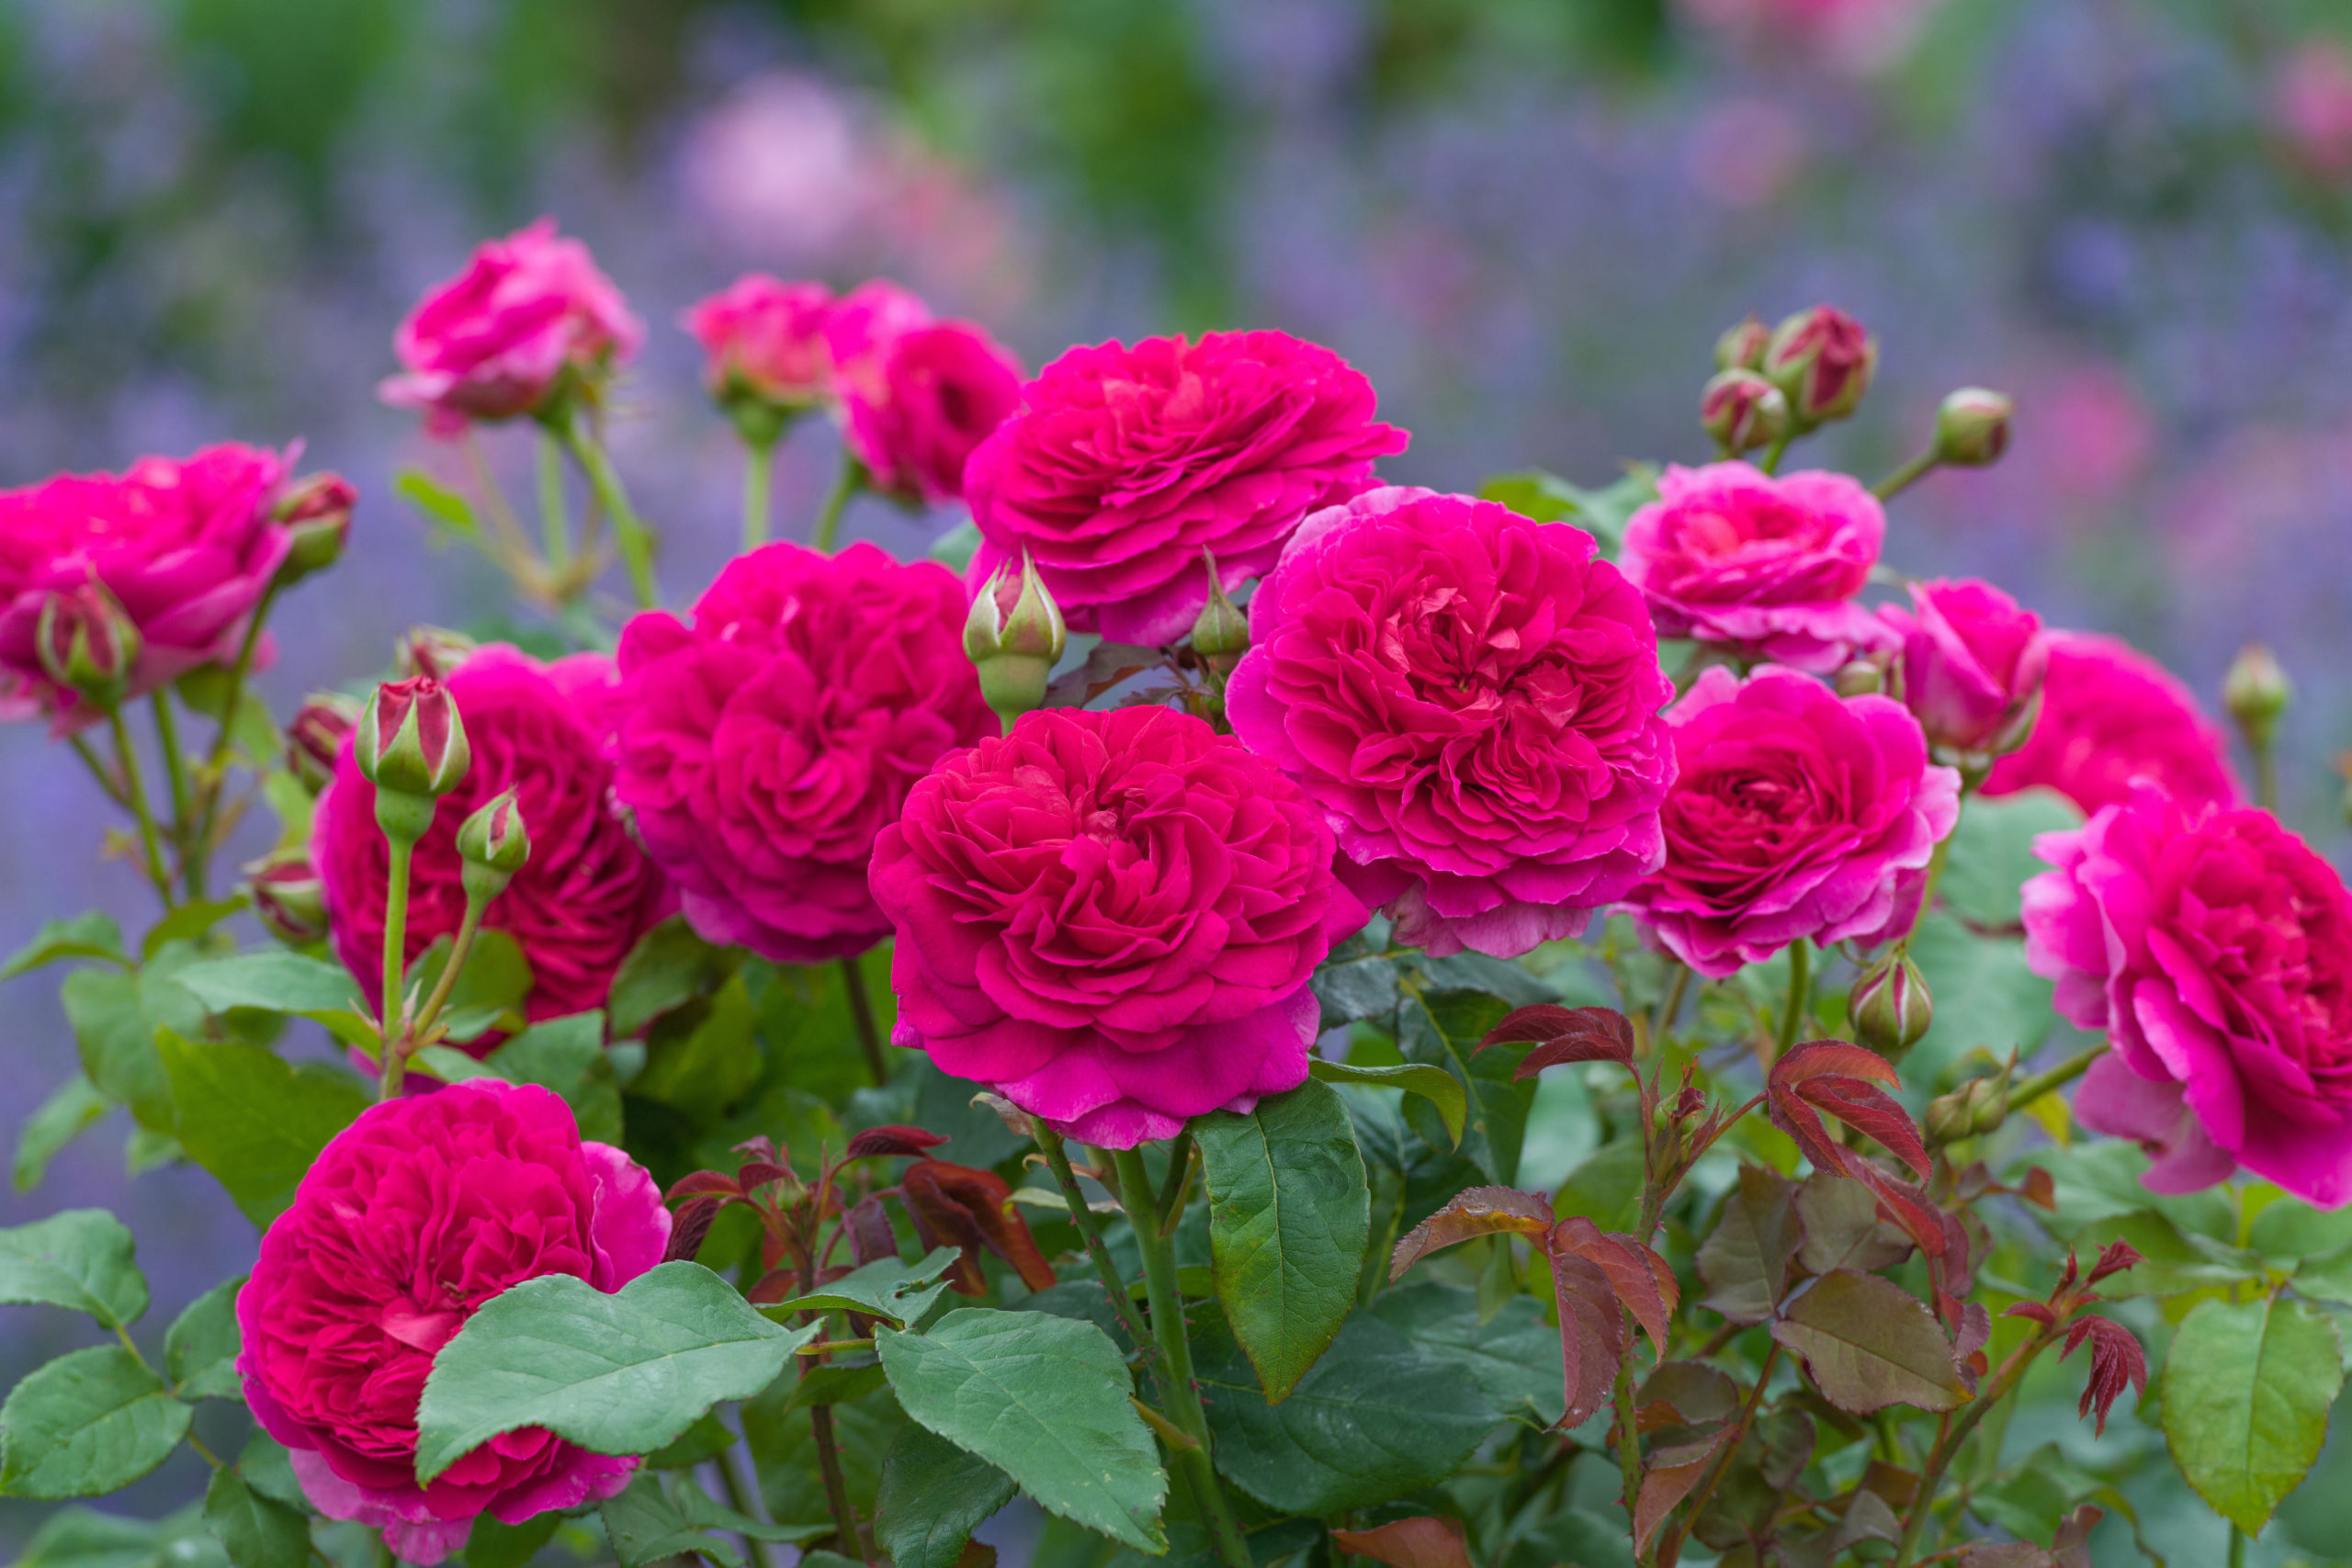 This new English rose from David Austin Roses grows to about 4 feet tall and 4 feet wide. With good disease resistance, great color and fragrance, it should do well in Hamptons gardens.